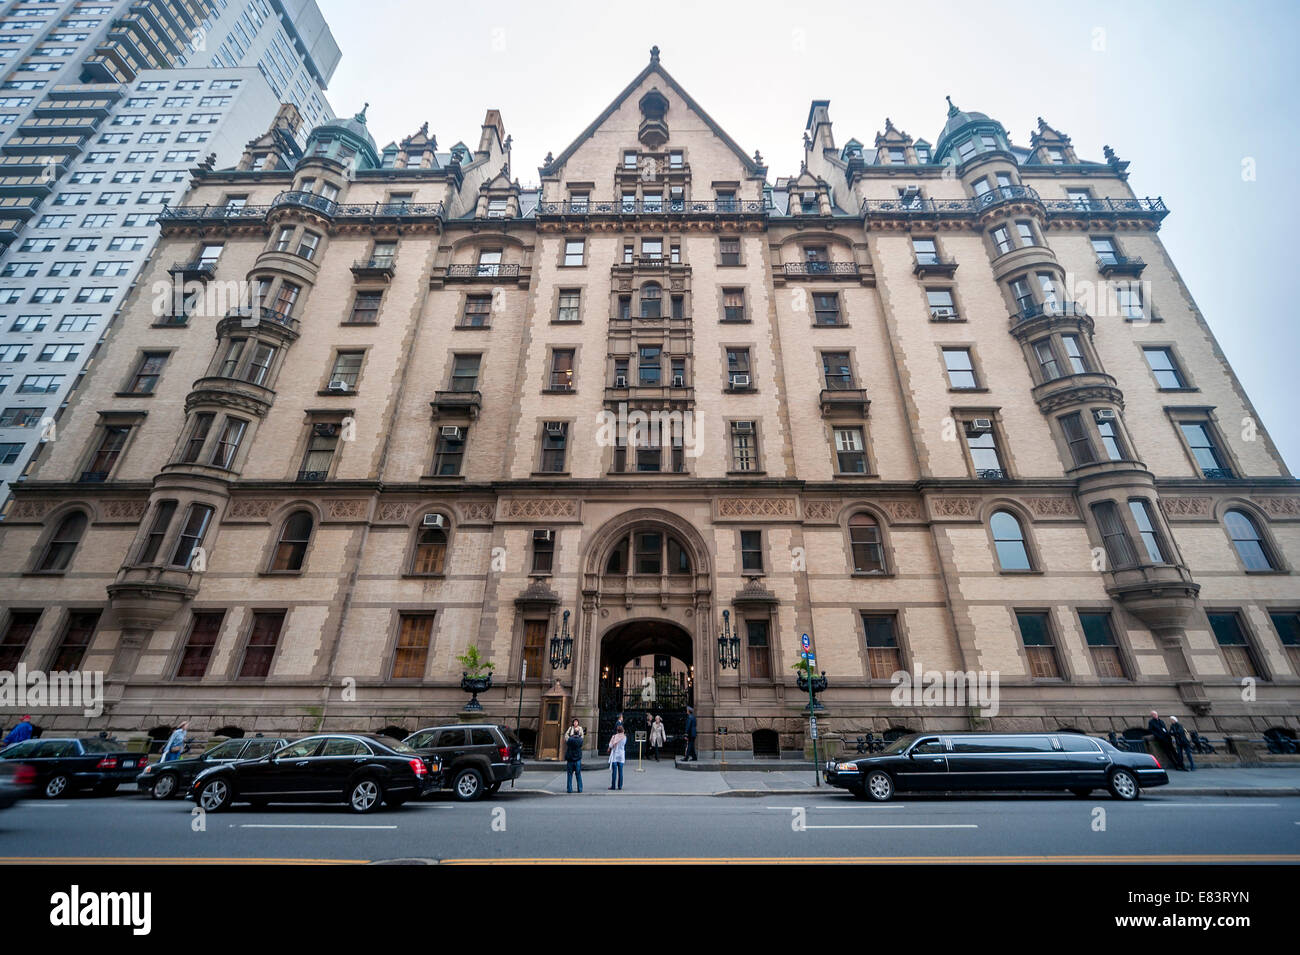 The dakota apartment stock photos the dakota apartment for Dakota building nyc apartments for sale